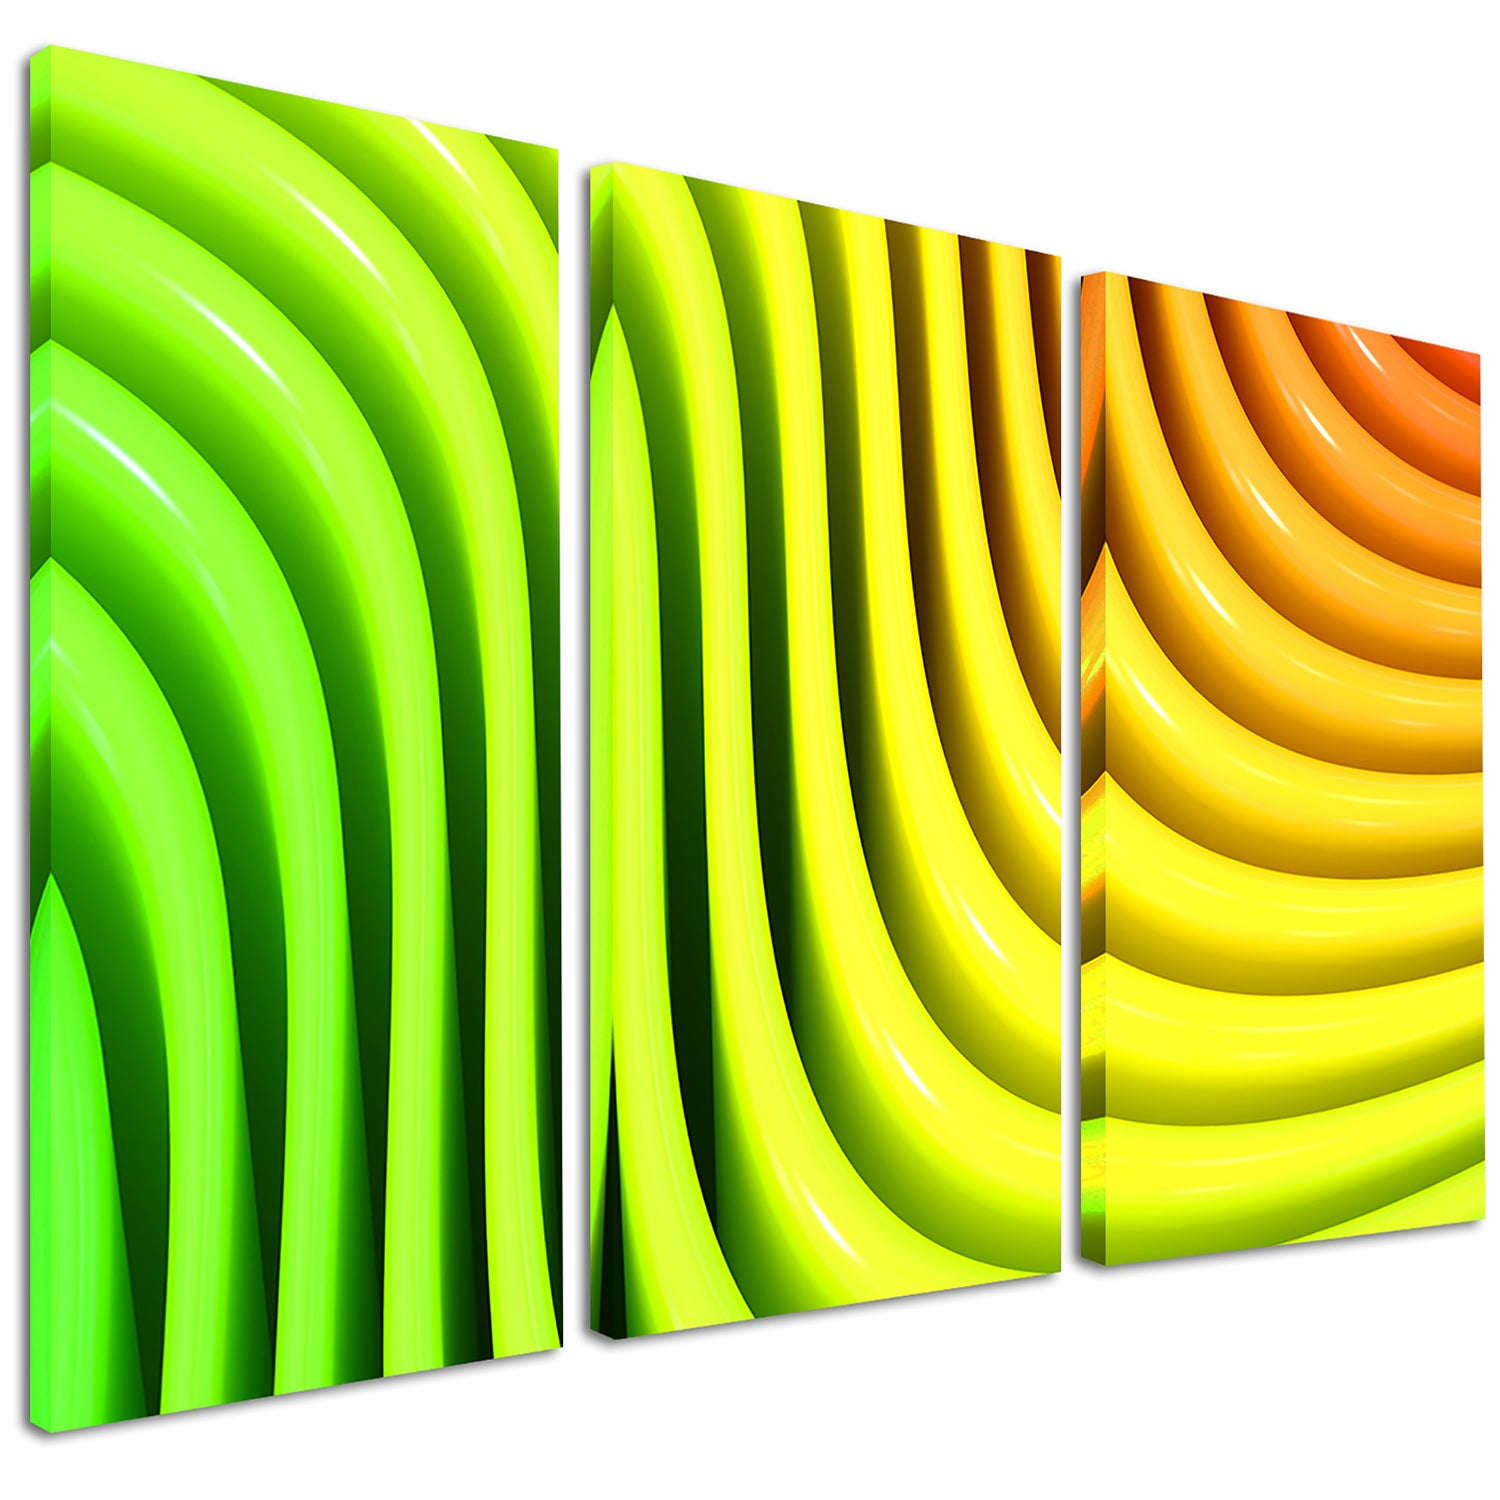 Rainbow Colors Wave - Abstract 3D Digital Art Glossy Metal Wall Art ...